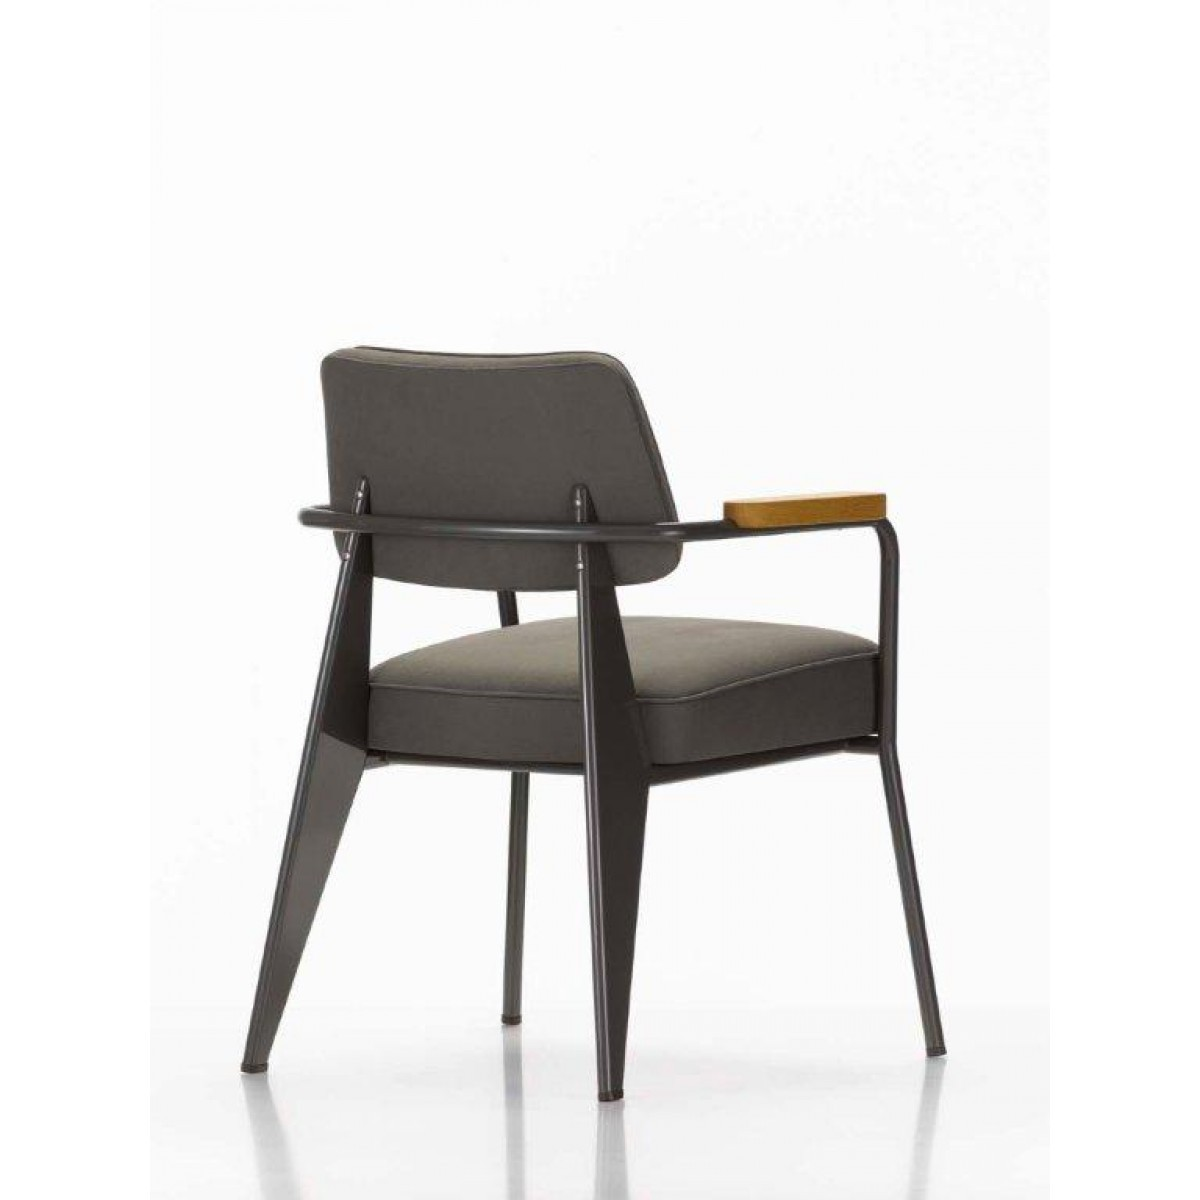 Prouve Sessel Vitra Fauteuil Direction Sessel Von Goodform Ch